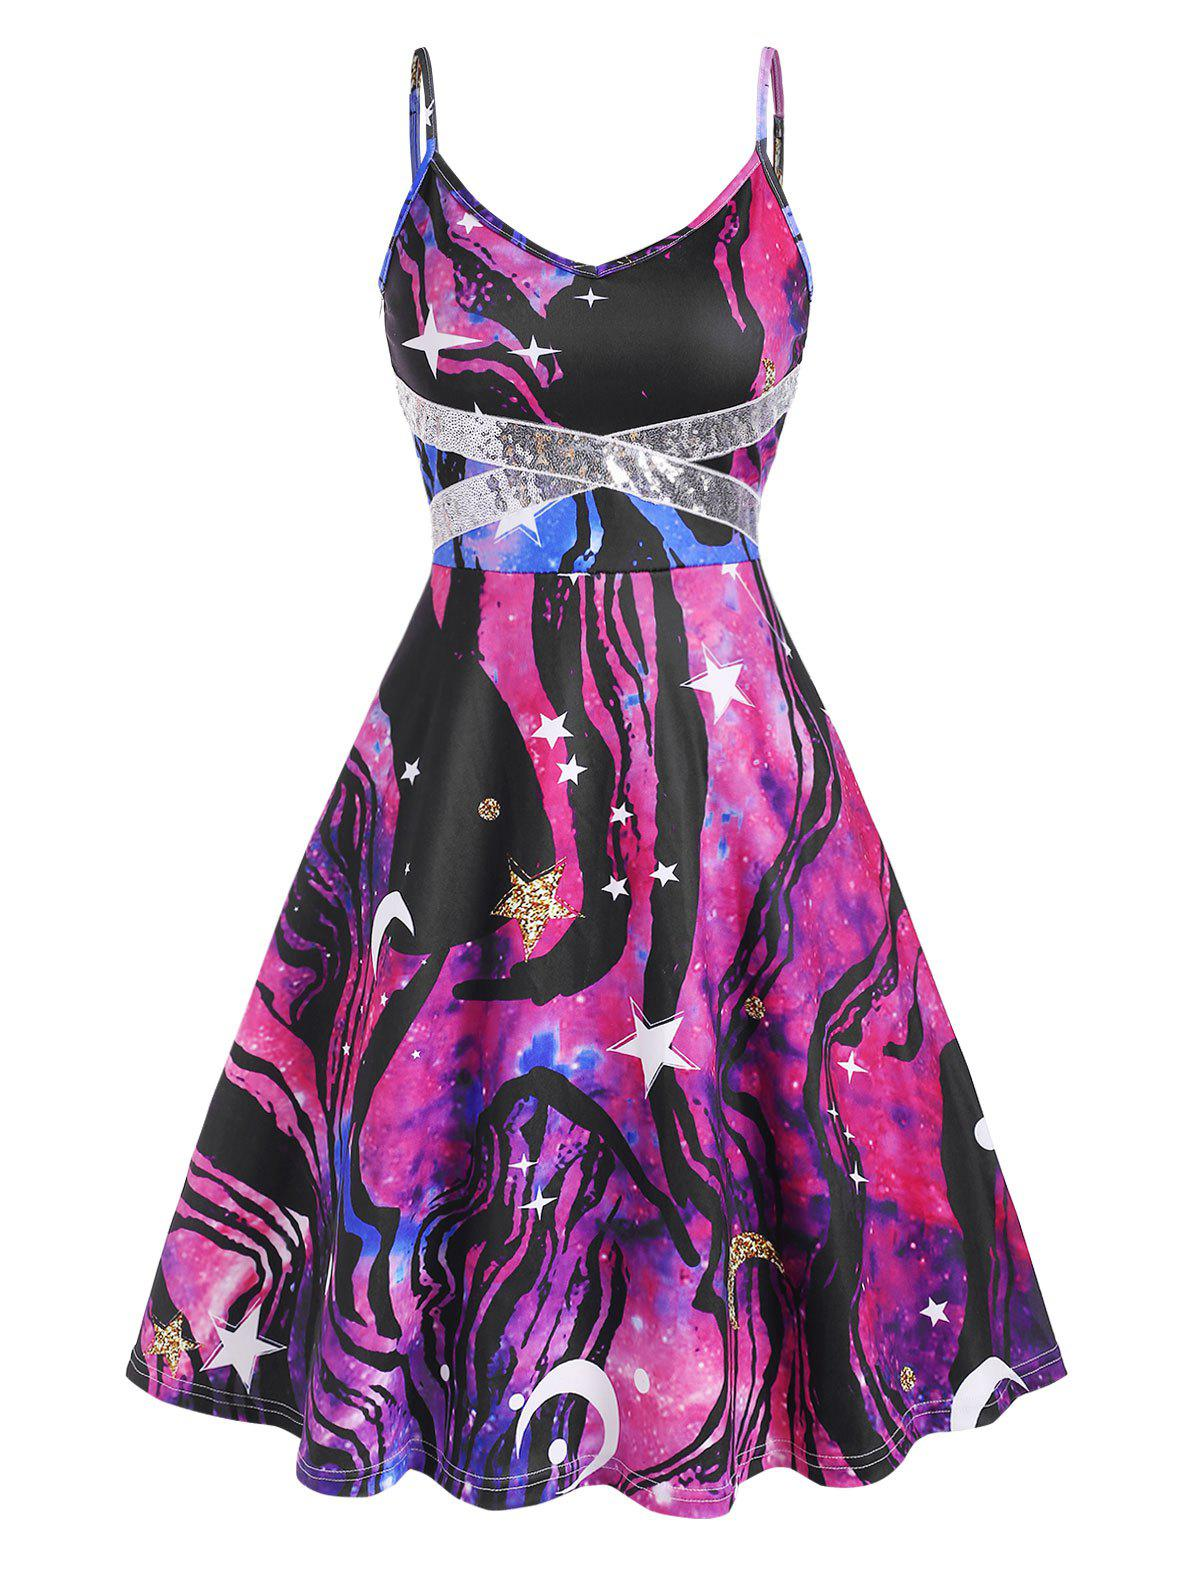 Galaxy Print Sequined Flared Cami Dress - multicolor M